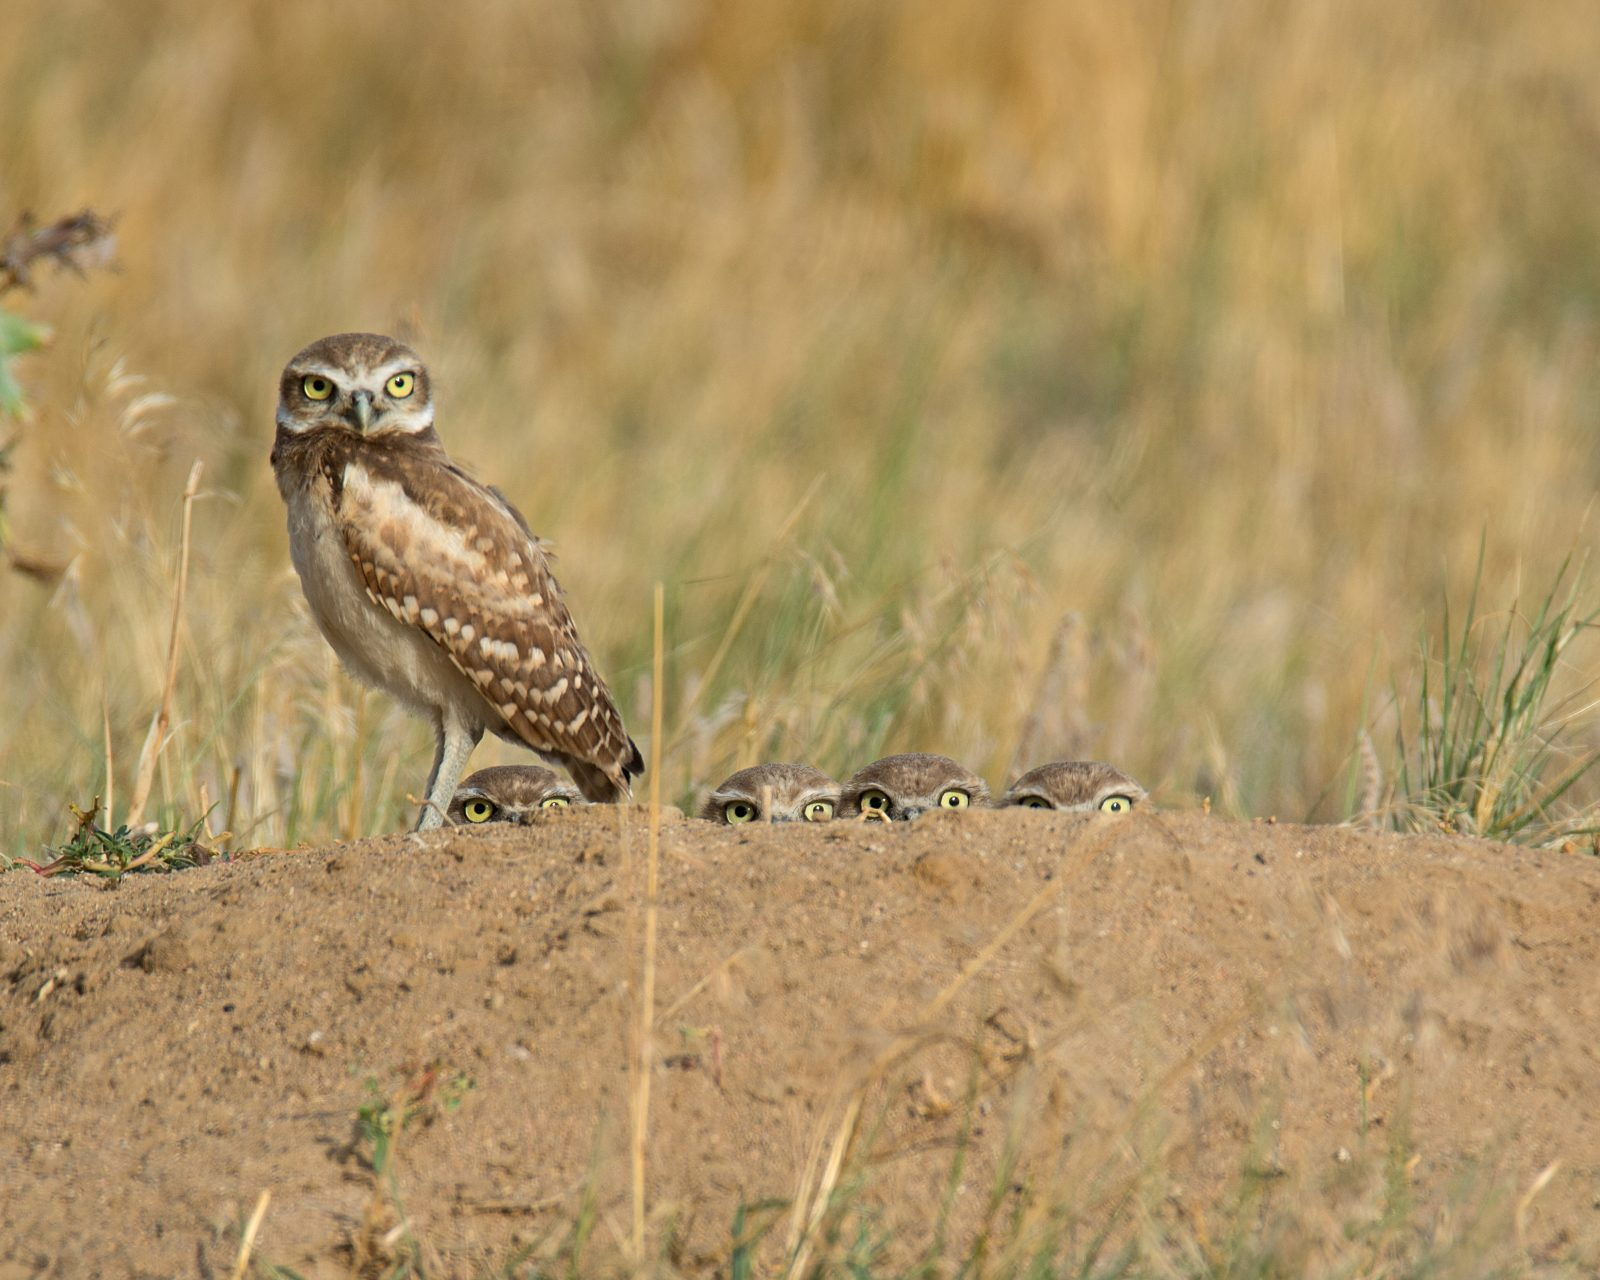 One Brave Owlet